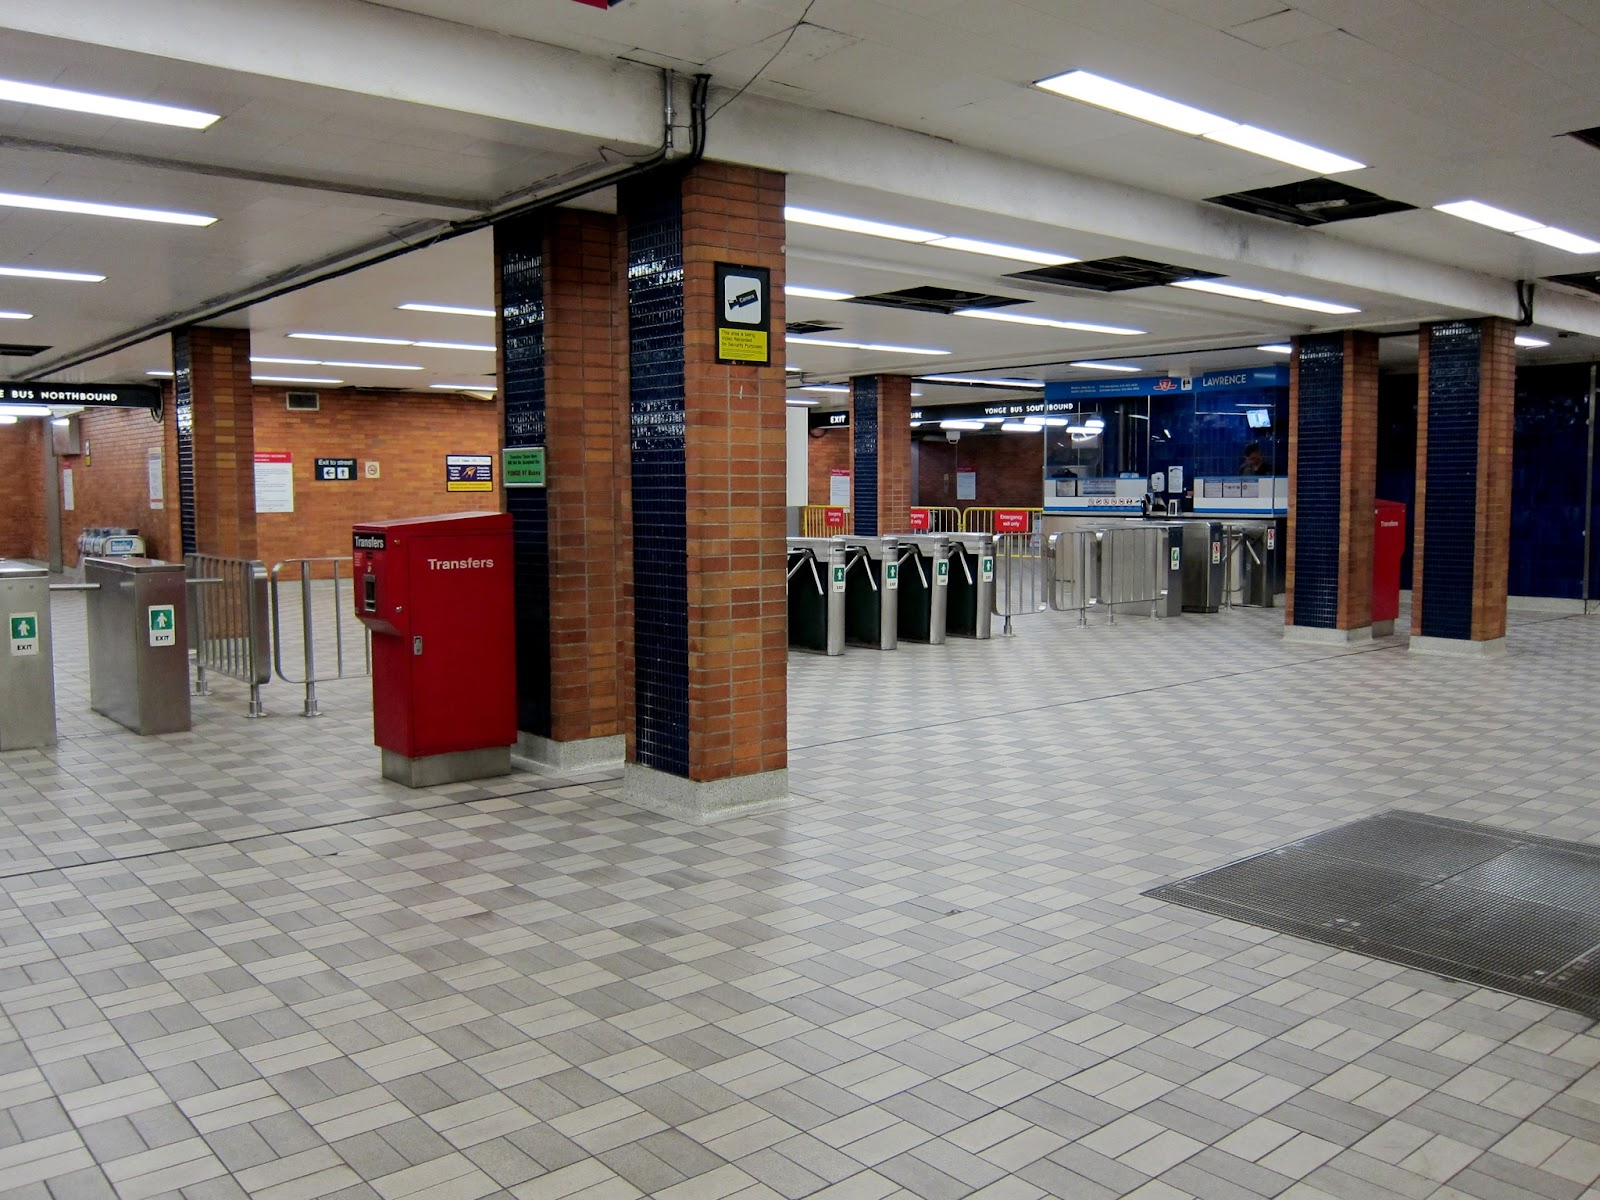 Lawrence station concourse